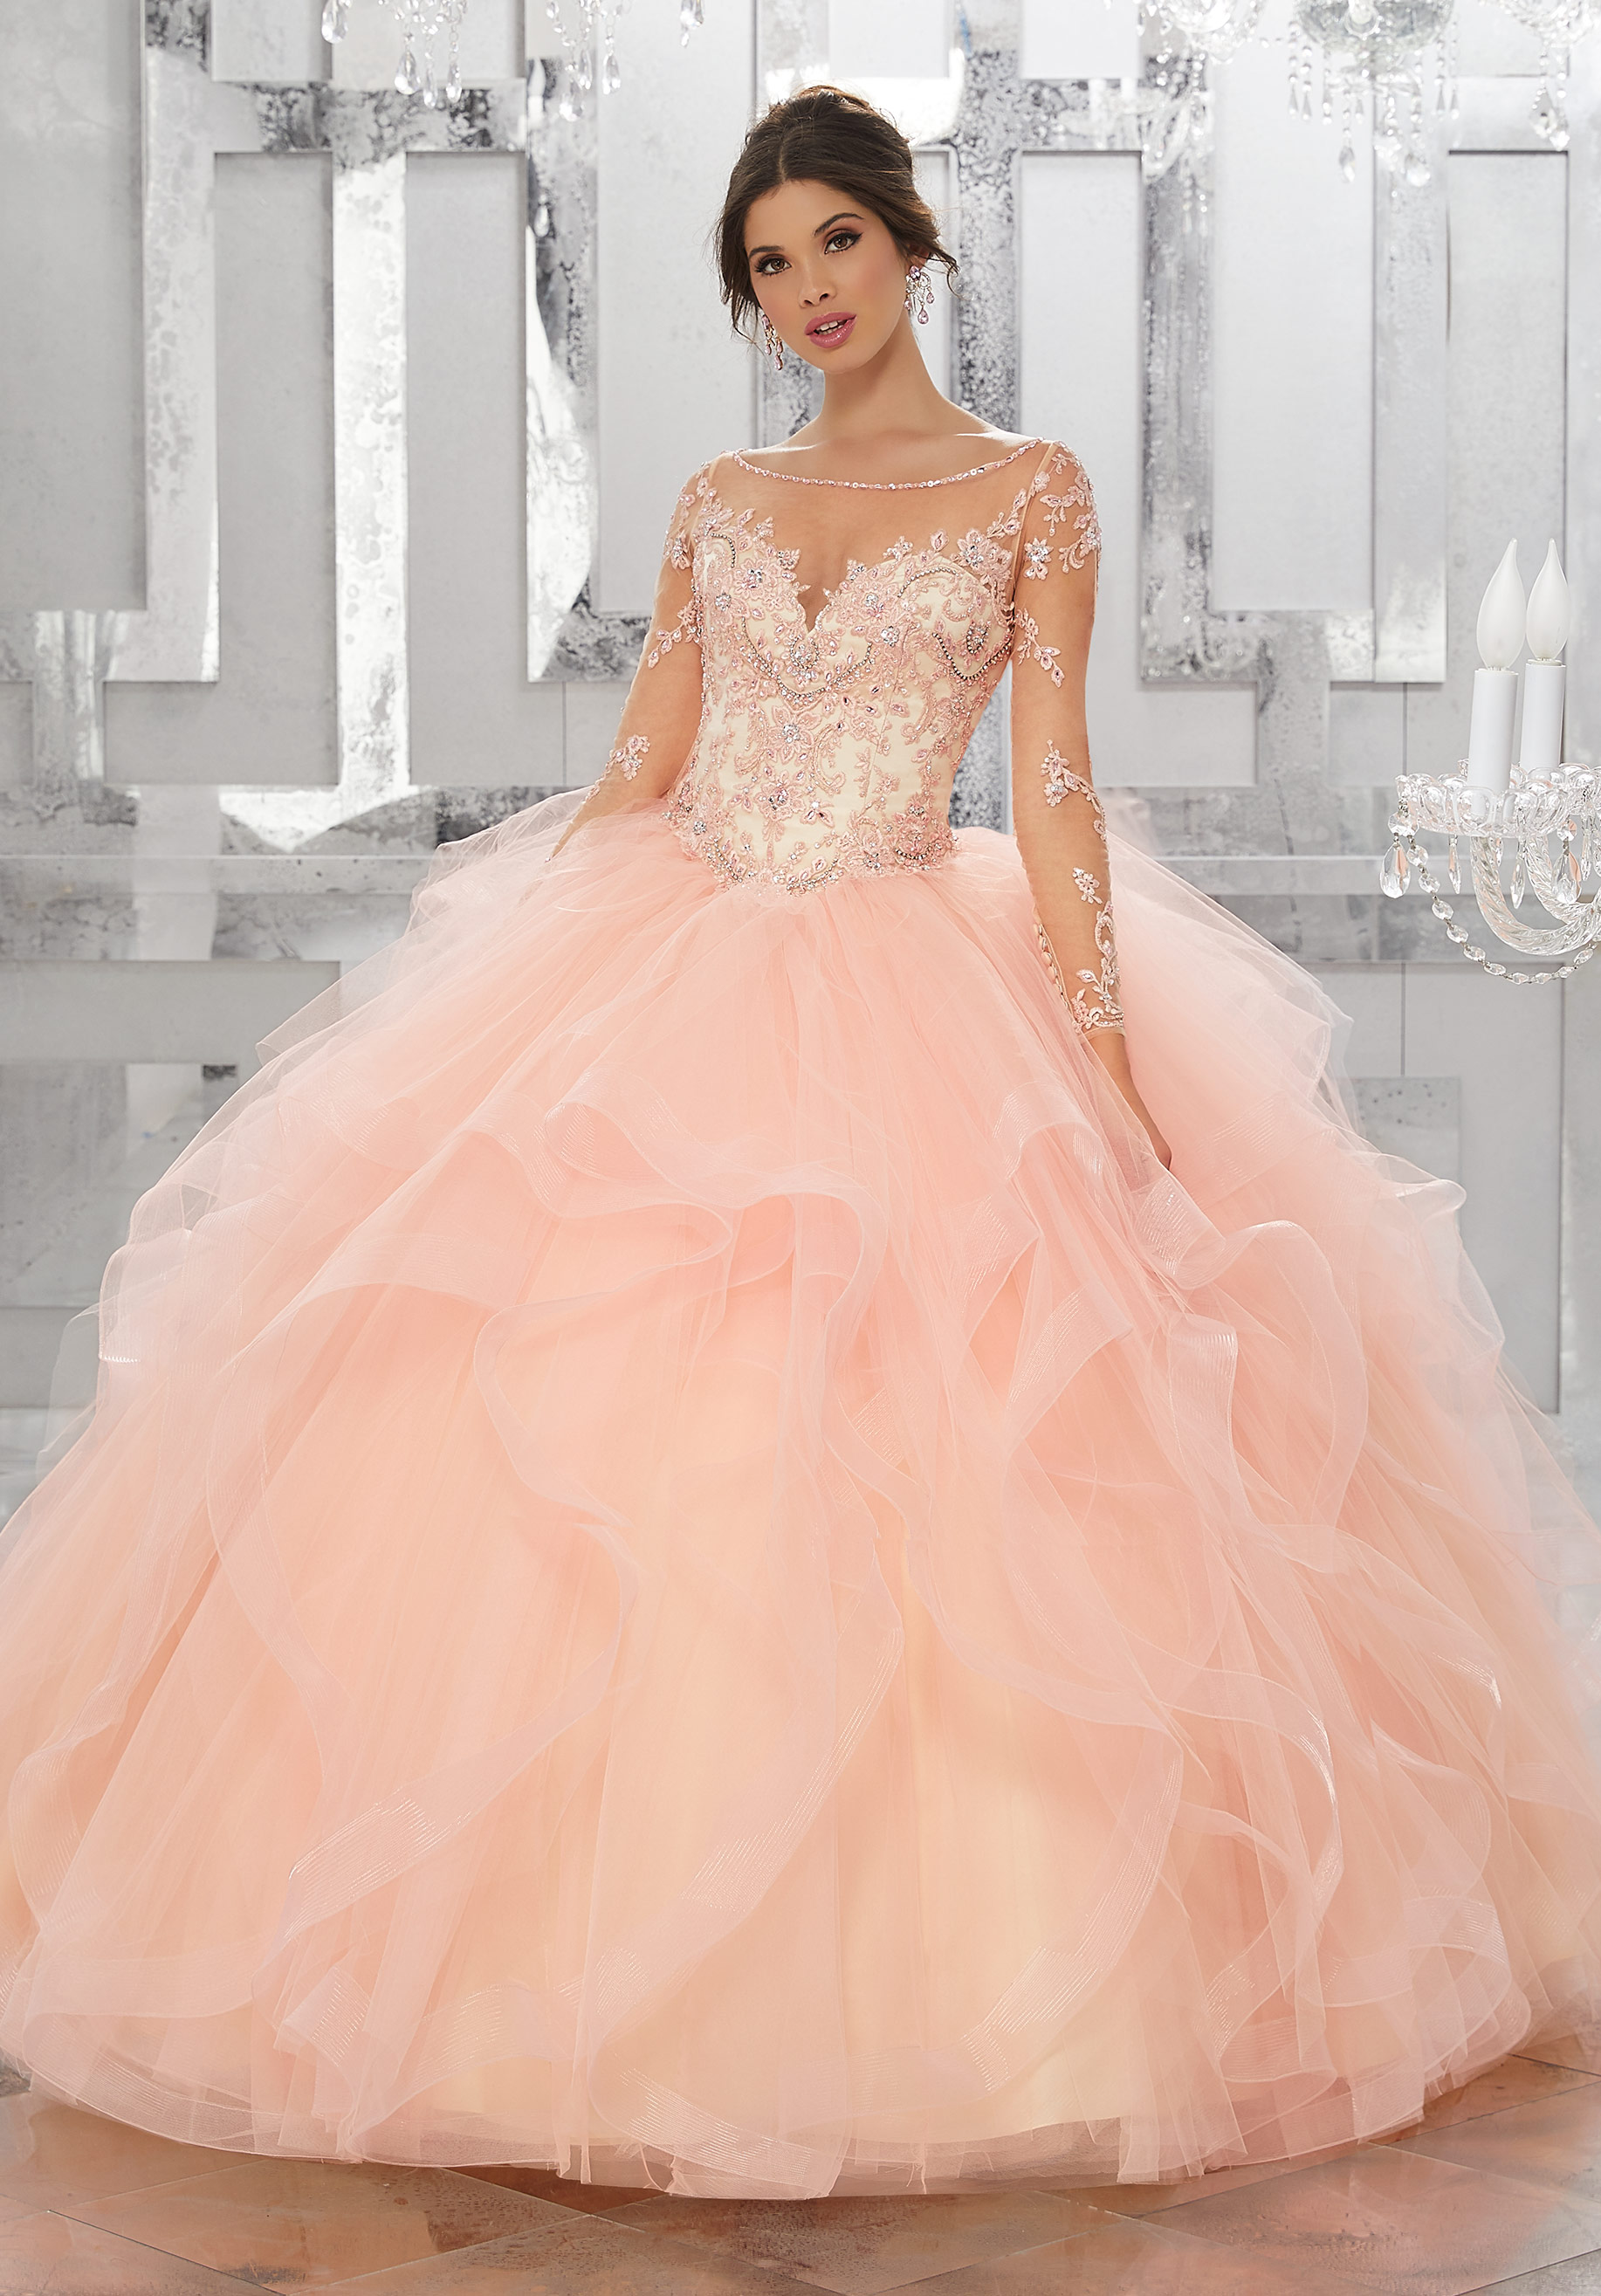 570044ce810 Home   Quinceanera Dresses   Vizcaya Collection   Beaded Embroidery on Net  with Flounced Tulle Ball Gown Skirt